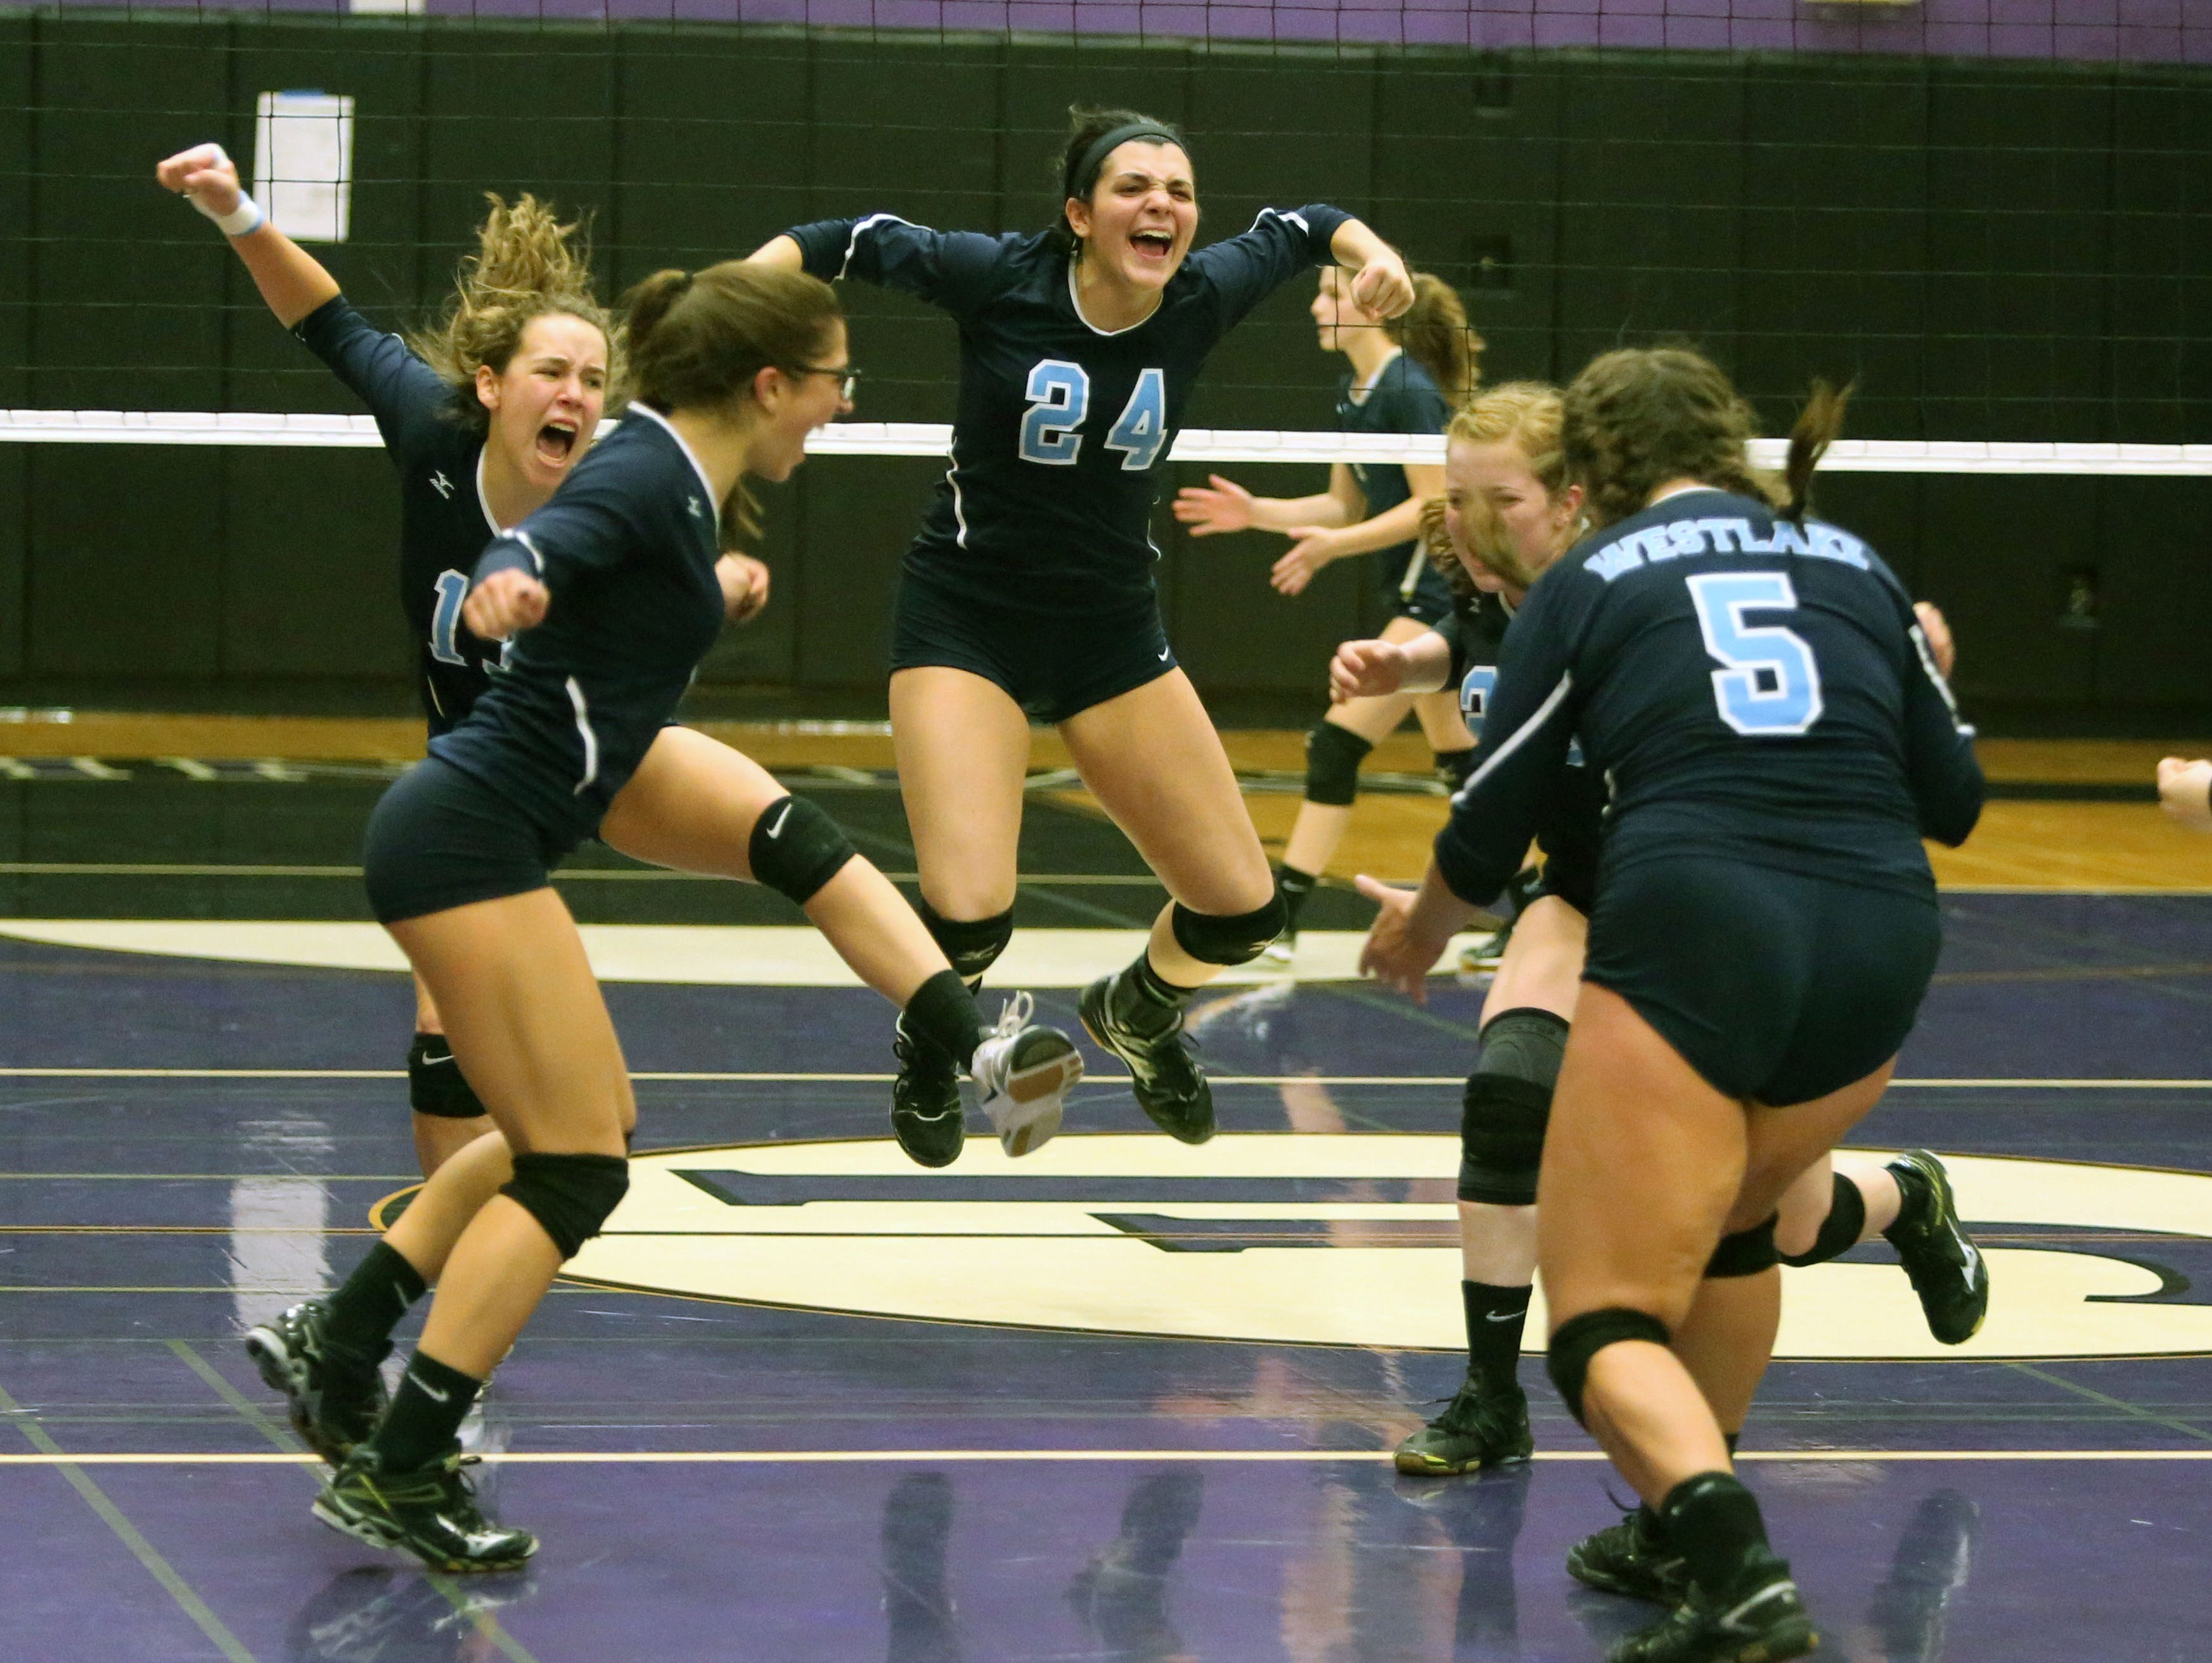 Westlake Captain Kelly Martin celebrates a point near the end of their match against Lourdes during the Section 1 Class B volleyball final at John Jay High School in Cross River, Nov. 5, 2016. Westlake beat Lourdes 3 games to 2.